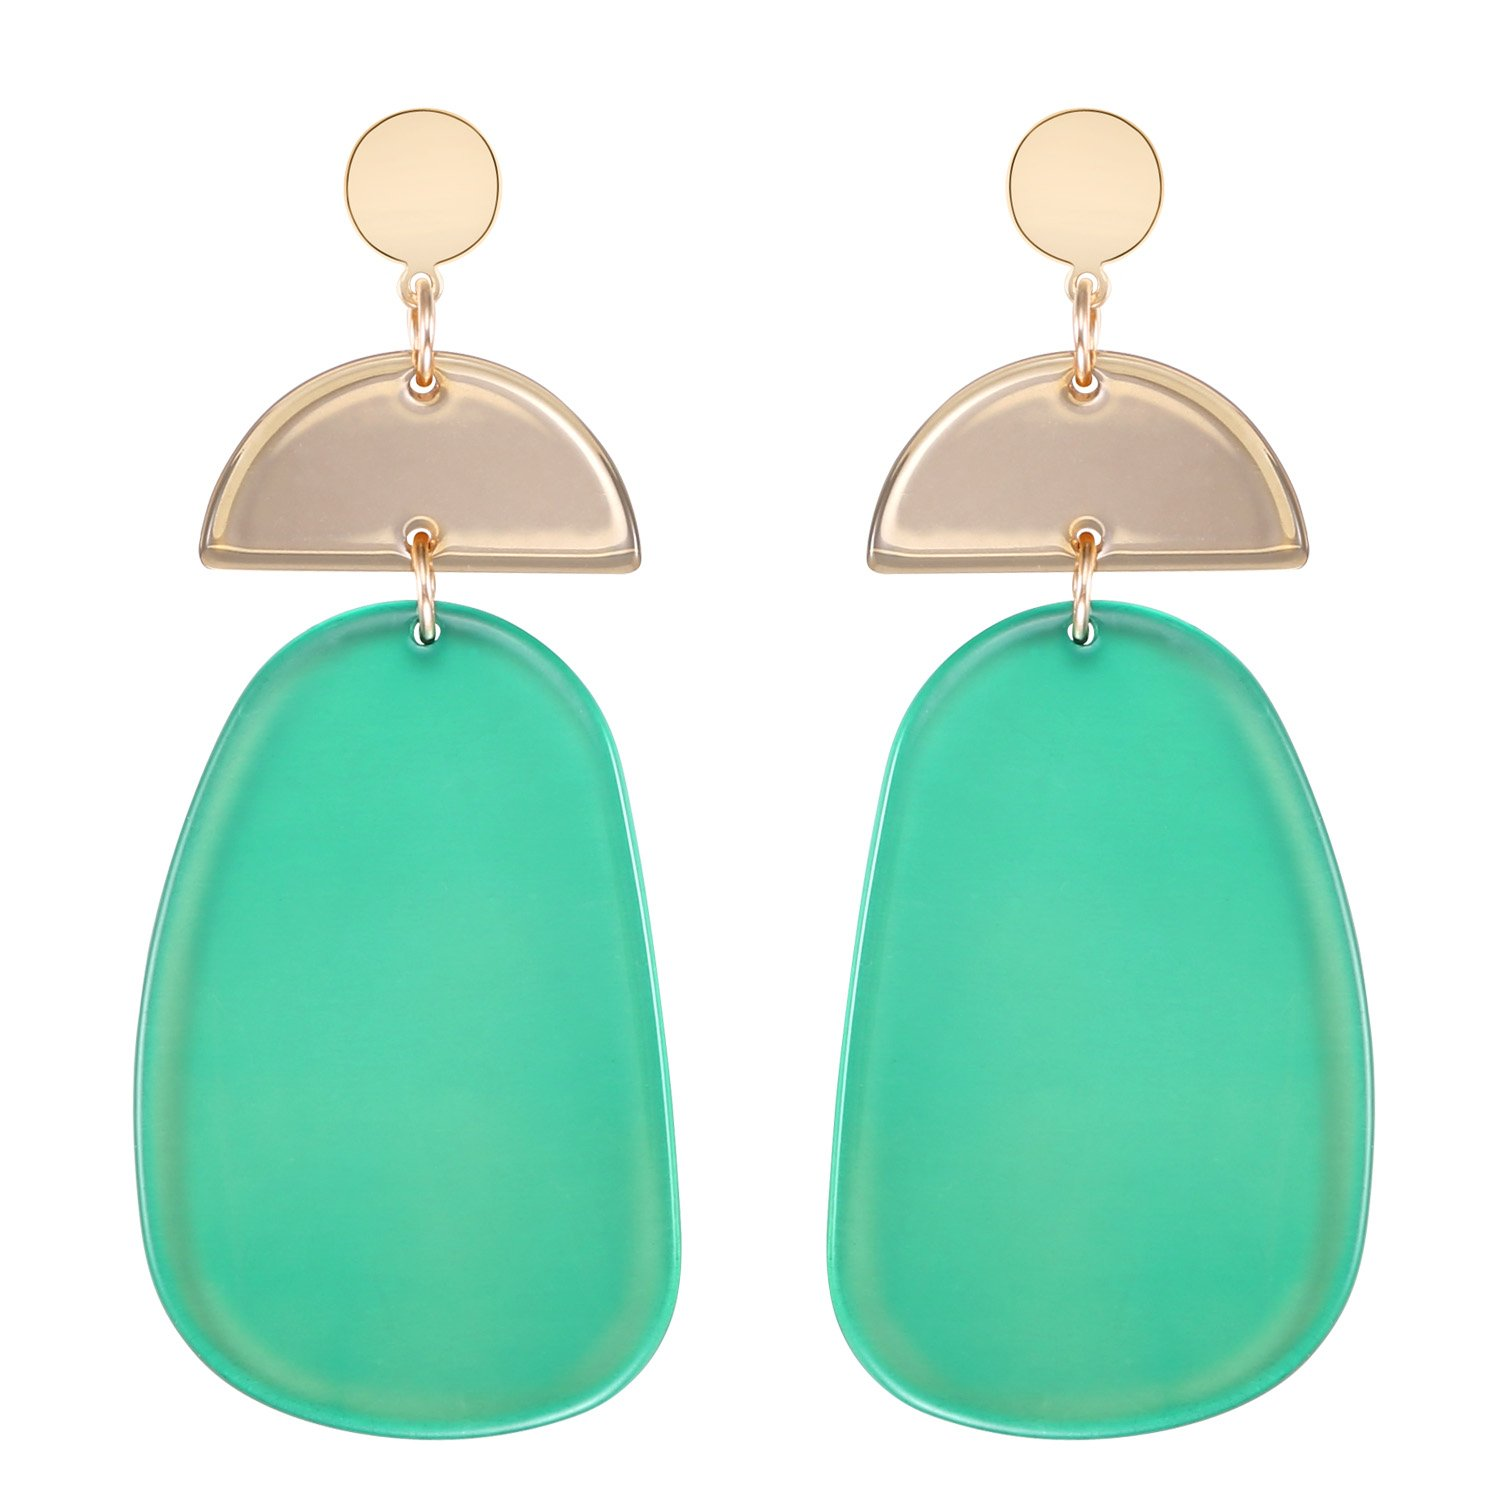 LILIE&WHITE Transparent Geometric Acrylic Hanging Earrings For Women Green